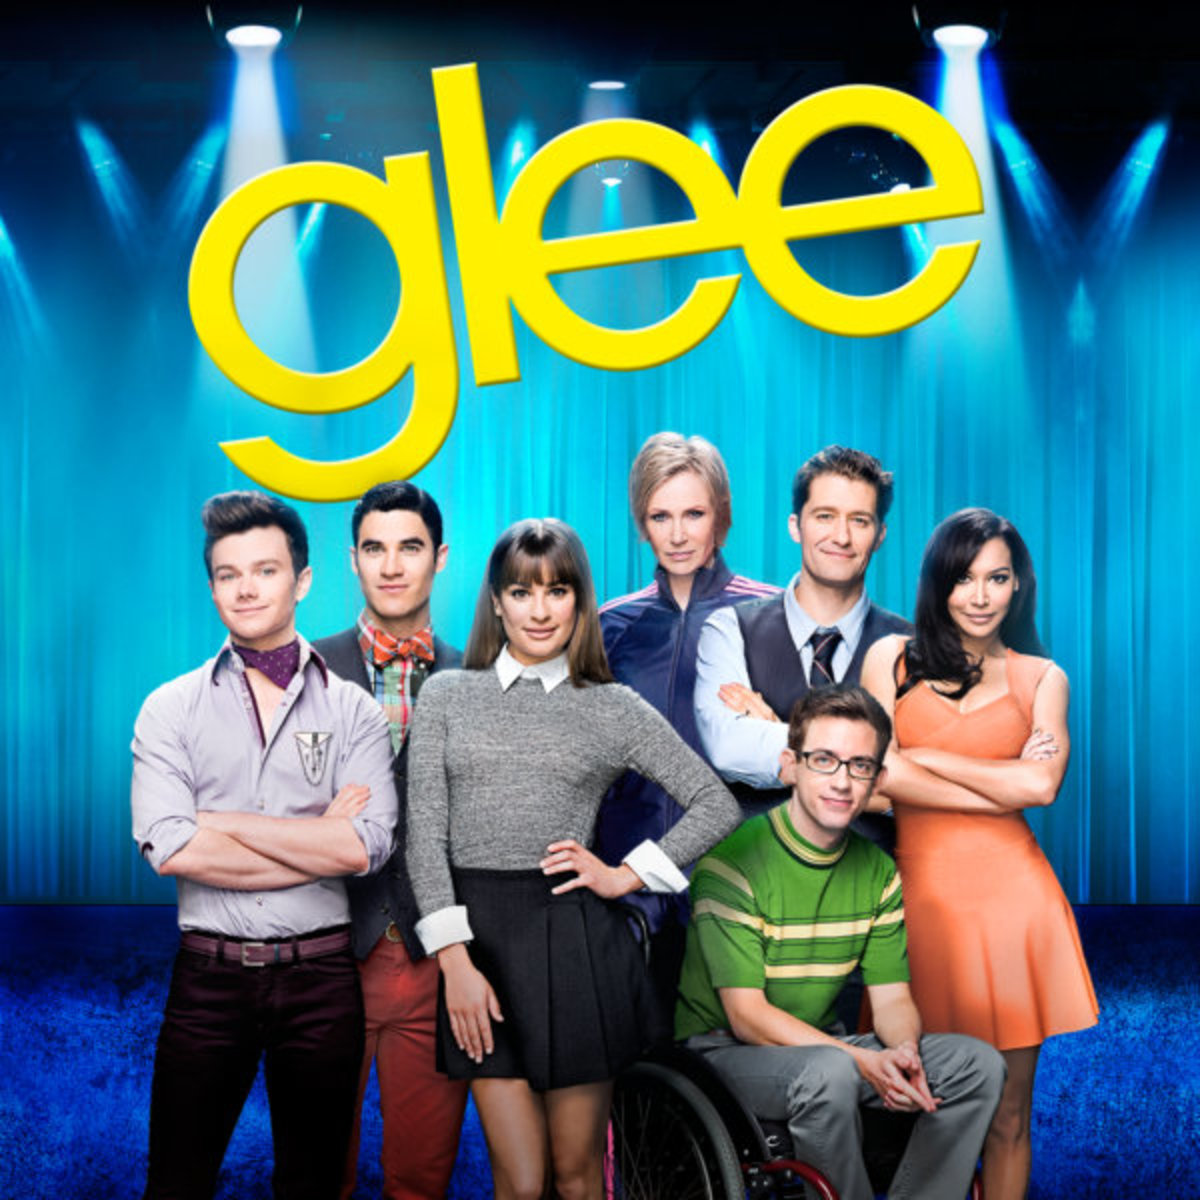 The 3 Important Messages Glee TV Series Conveys to People